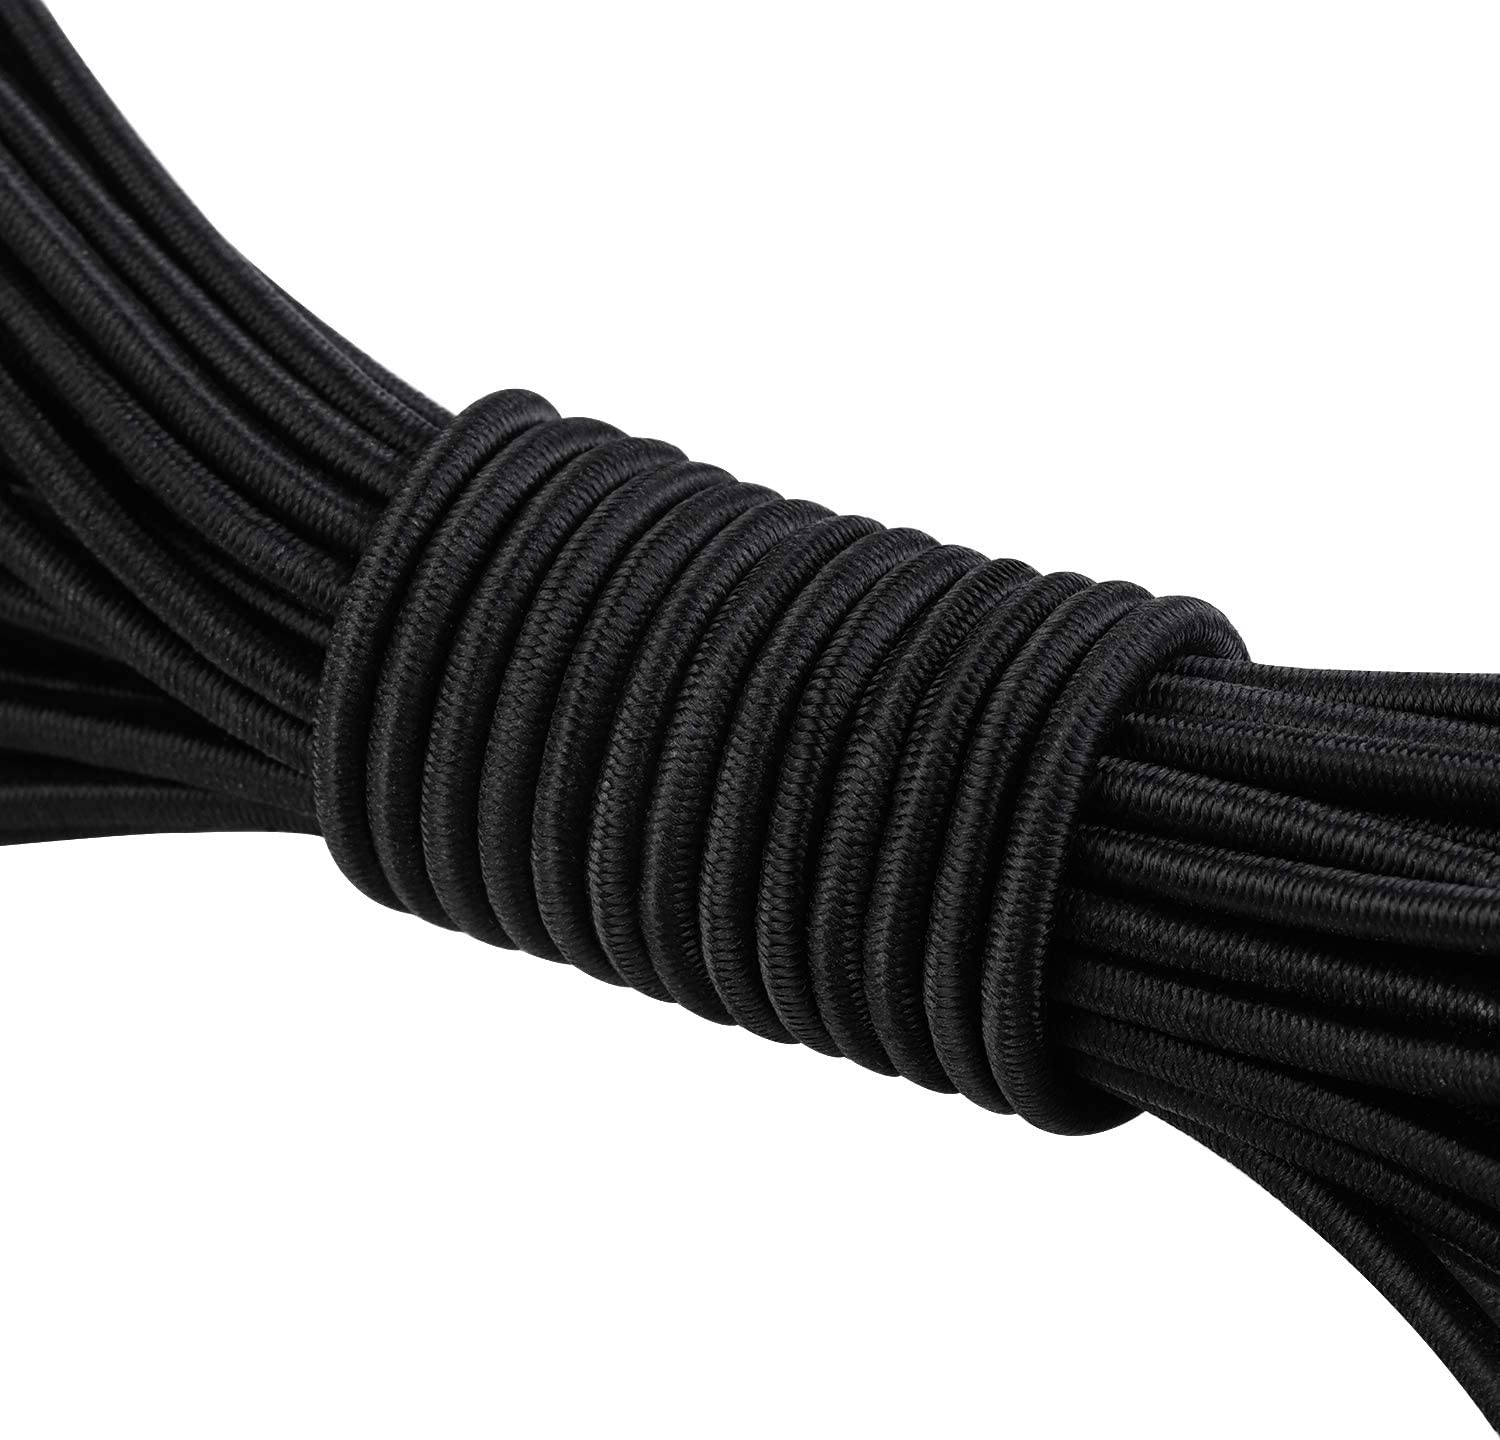 Aodaer Bungee Shock Cords Elastic Band Nylon Cords Heavy Stretchy String Rope for Marine Kayak Tie Down Trailer Strap or DIY Applications 1//4 inch x 12 feet, black